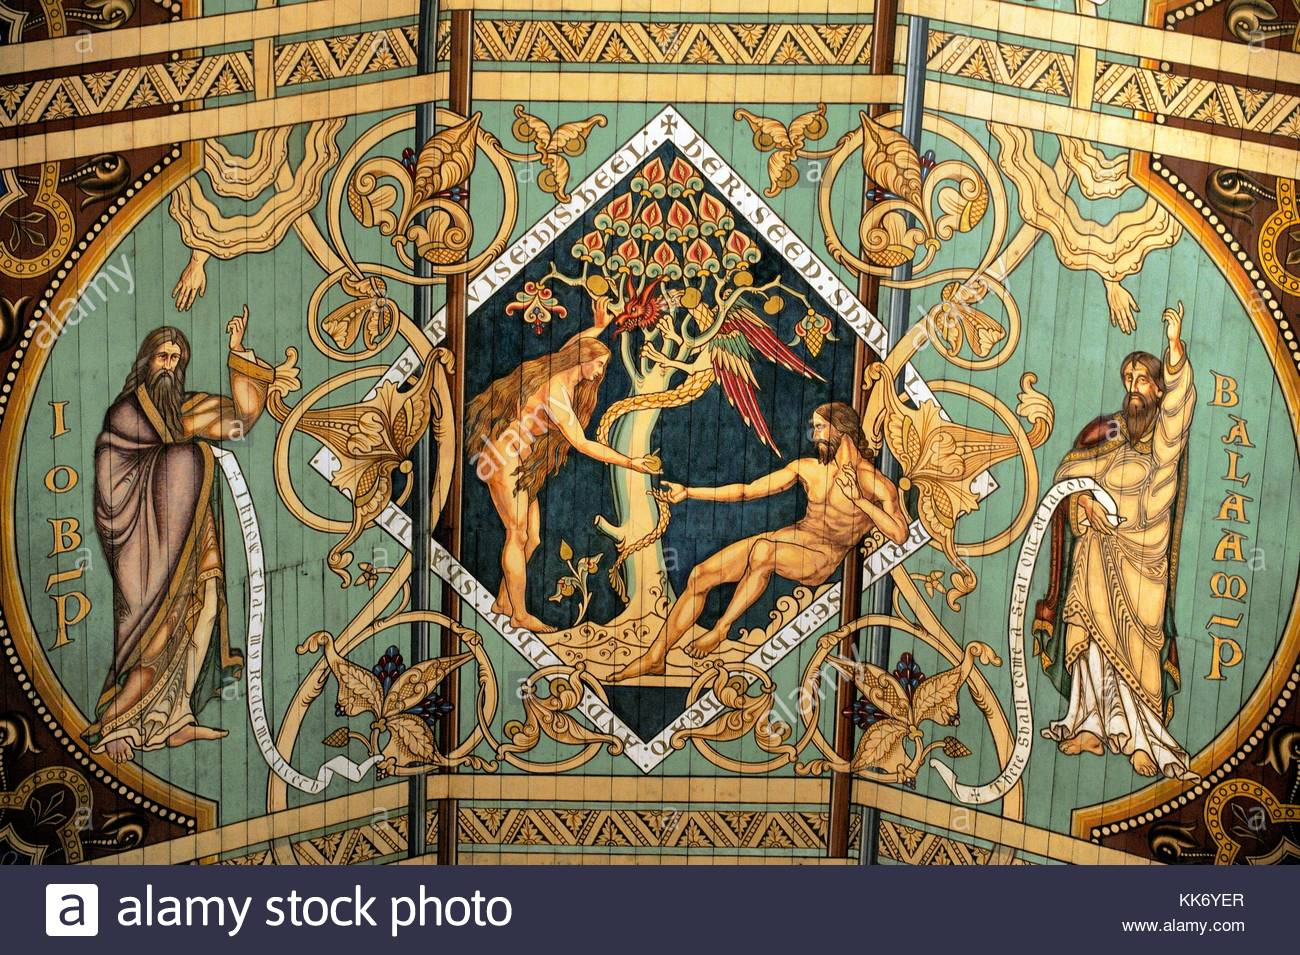 Ely Cathedral, Cambridgeshire, England. Temptation of Eve and Adam ...